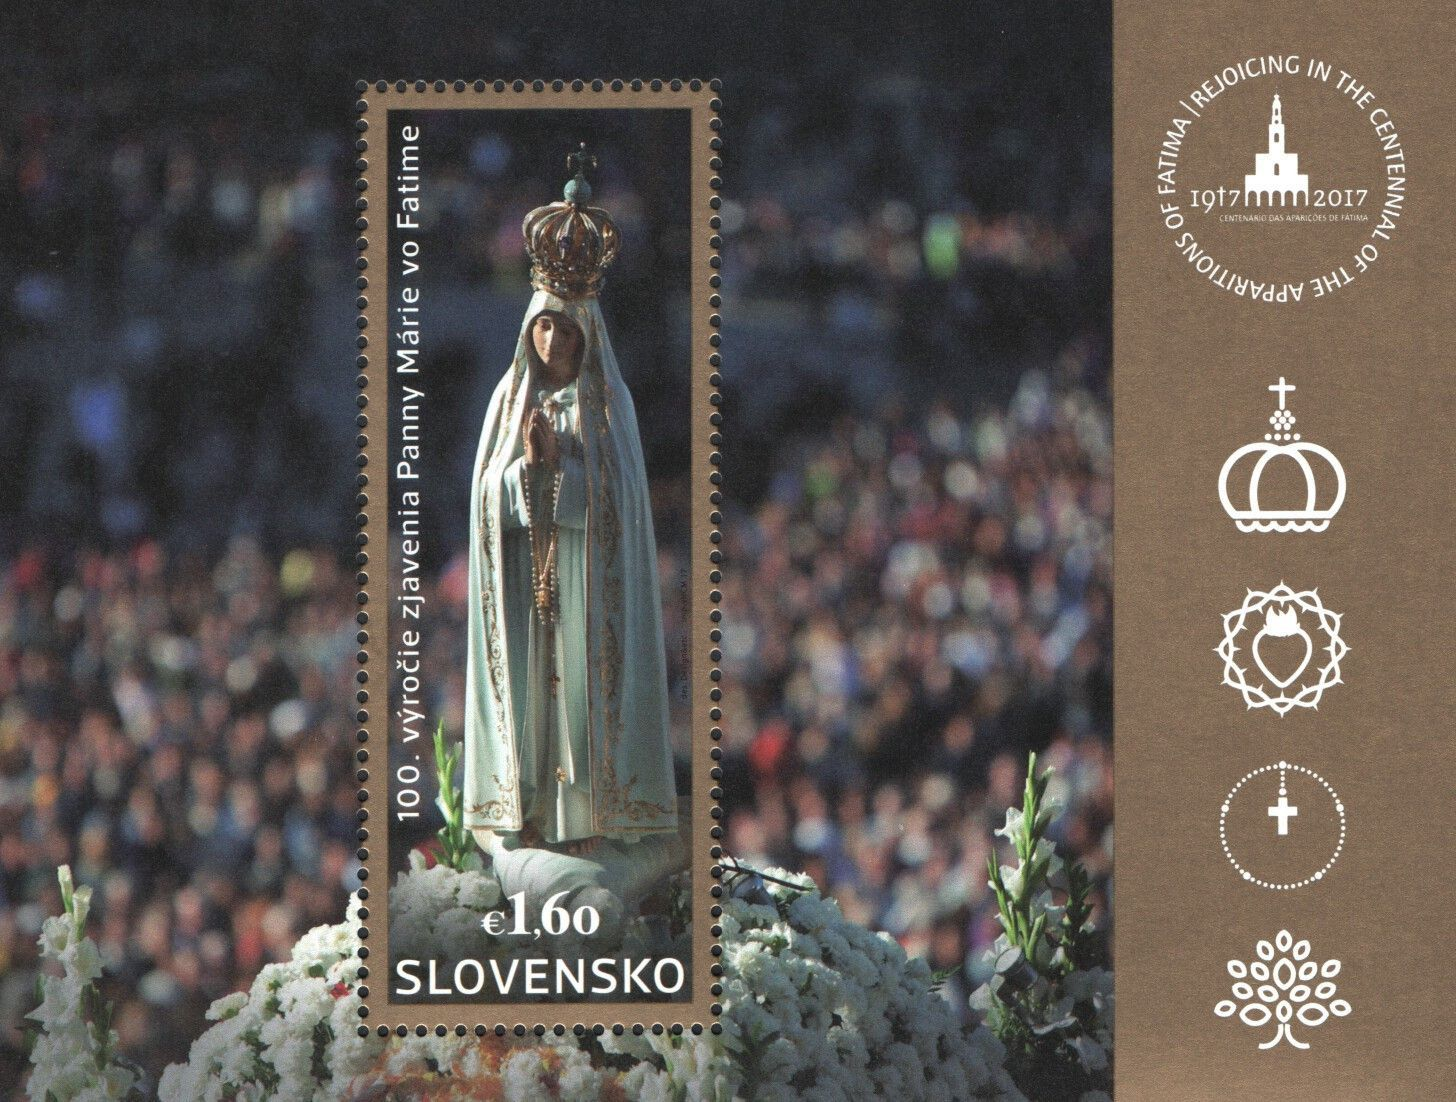 759 Slovakia 2017 100th Anniv Of Our Lady Of Fatima Apparitions S S Mnh Lady Of Fatima Fatima Joint Issues